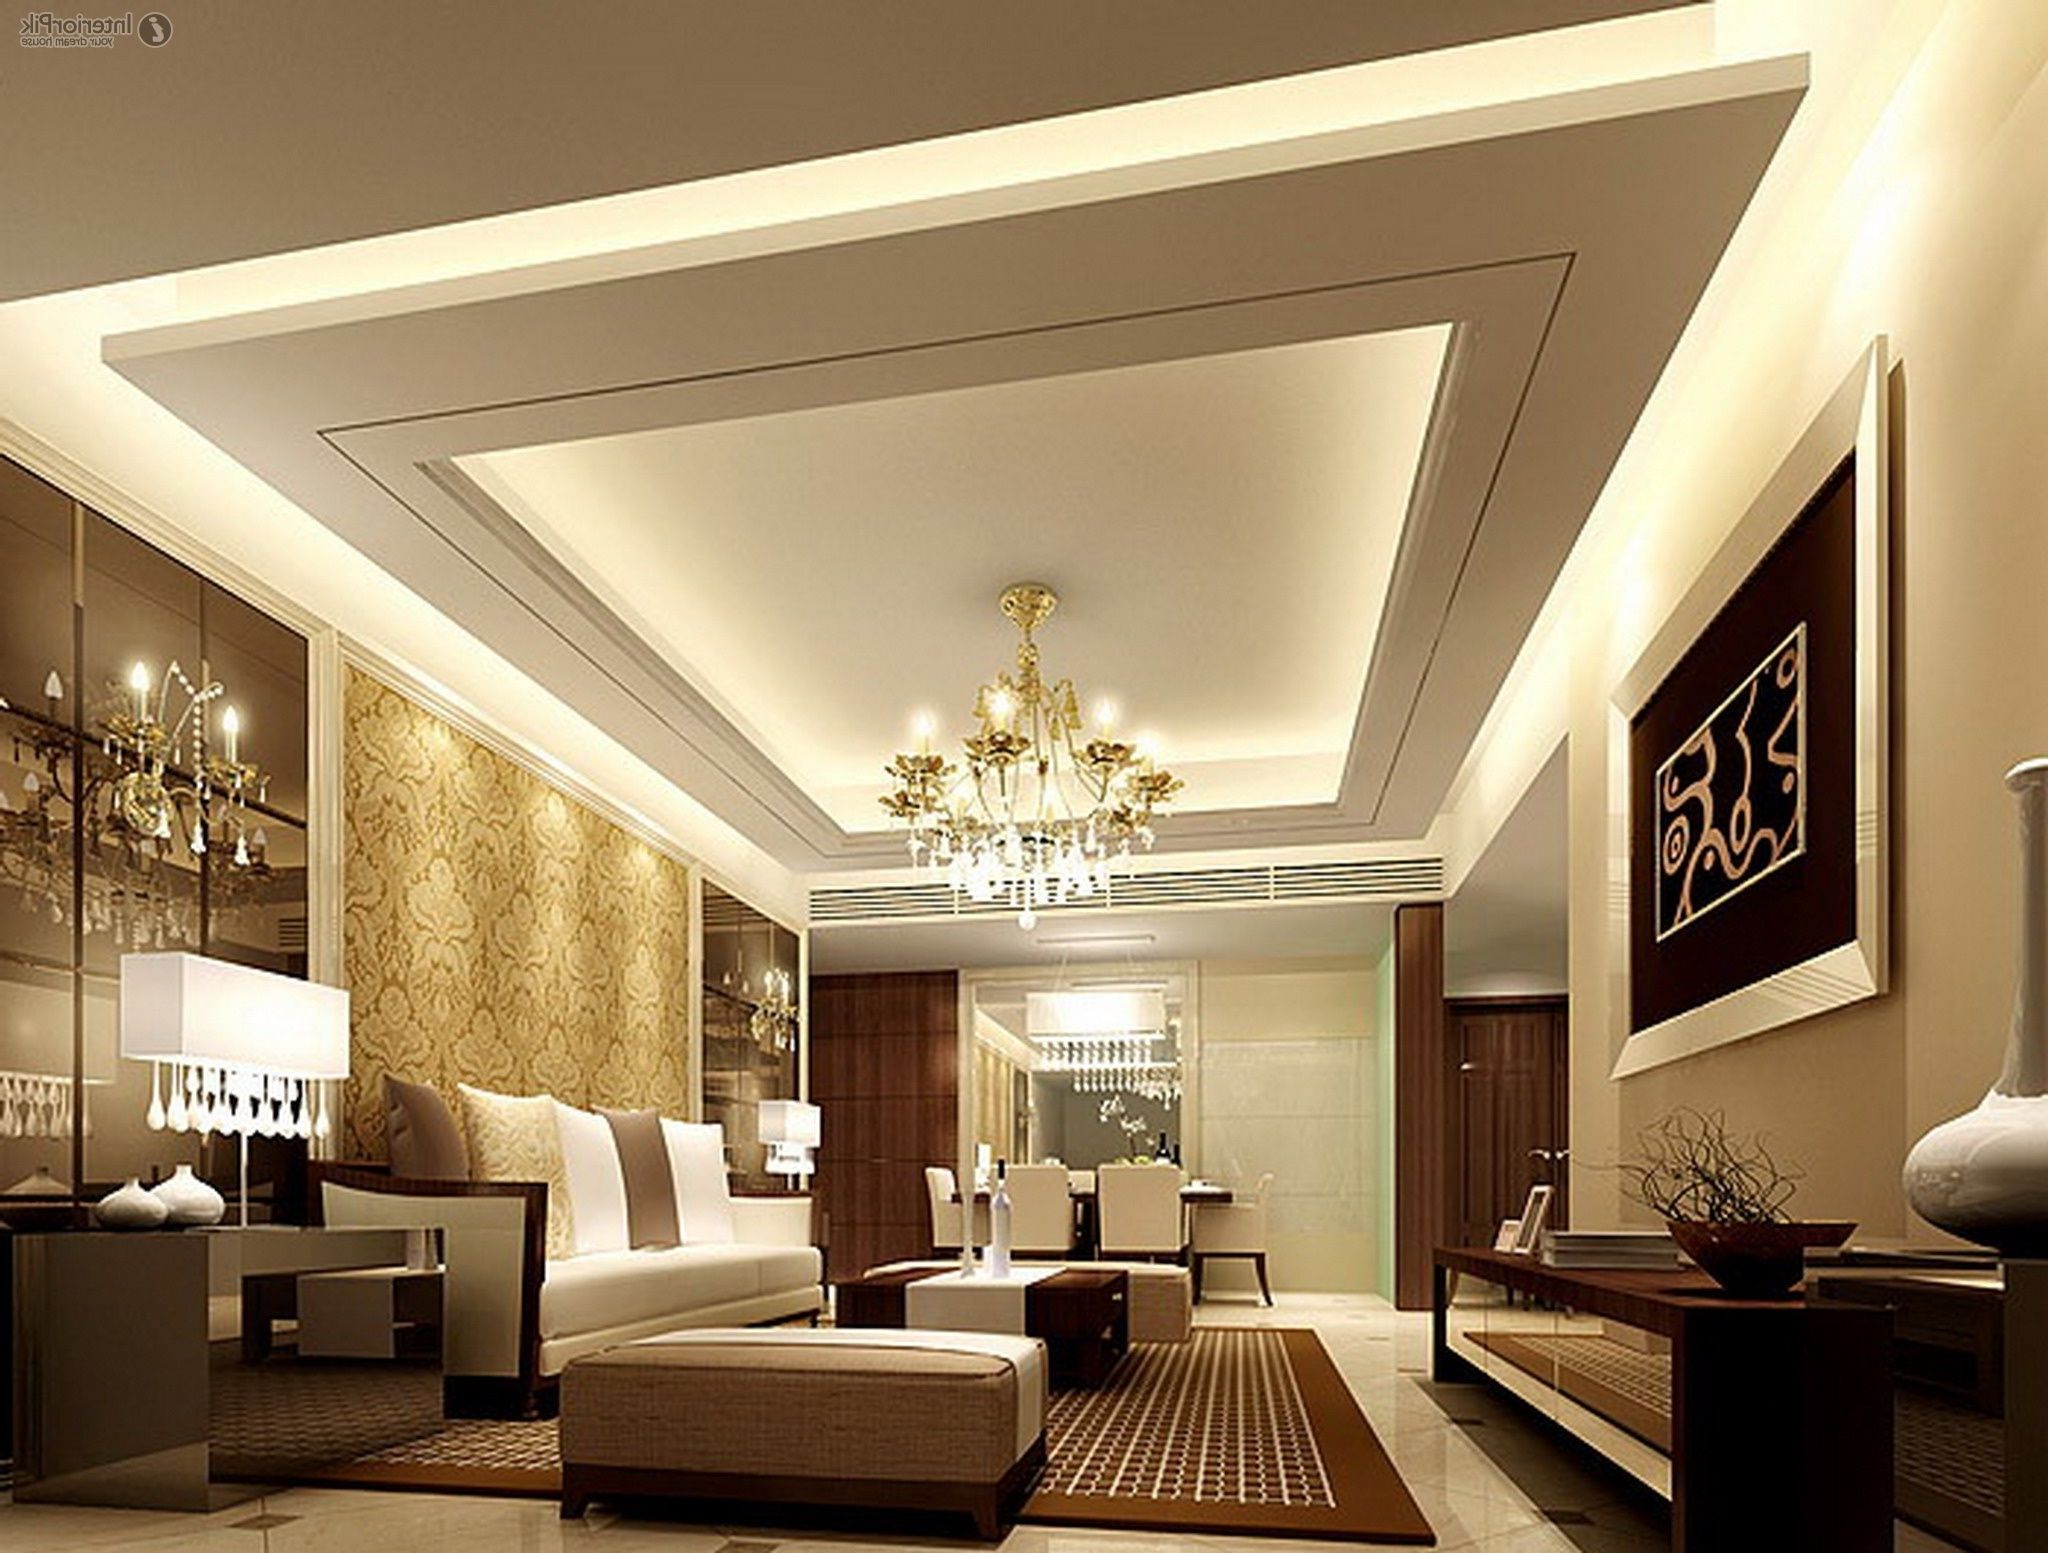 Best Design For Living Room New Gypsum Ceiling Design For Living Room Lighting Home Decorate Best Design Inspiration